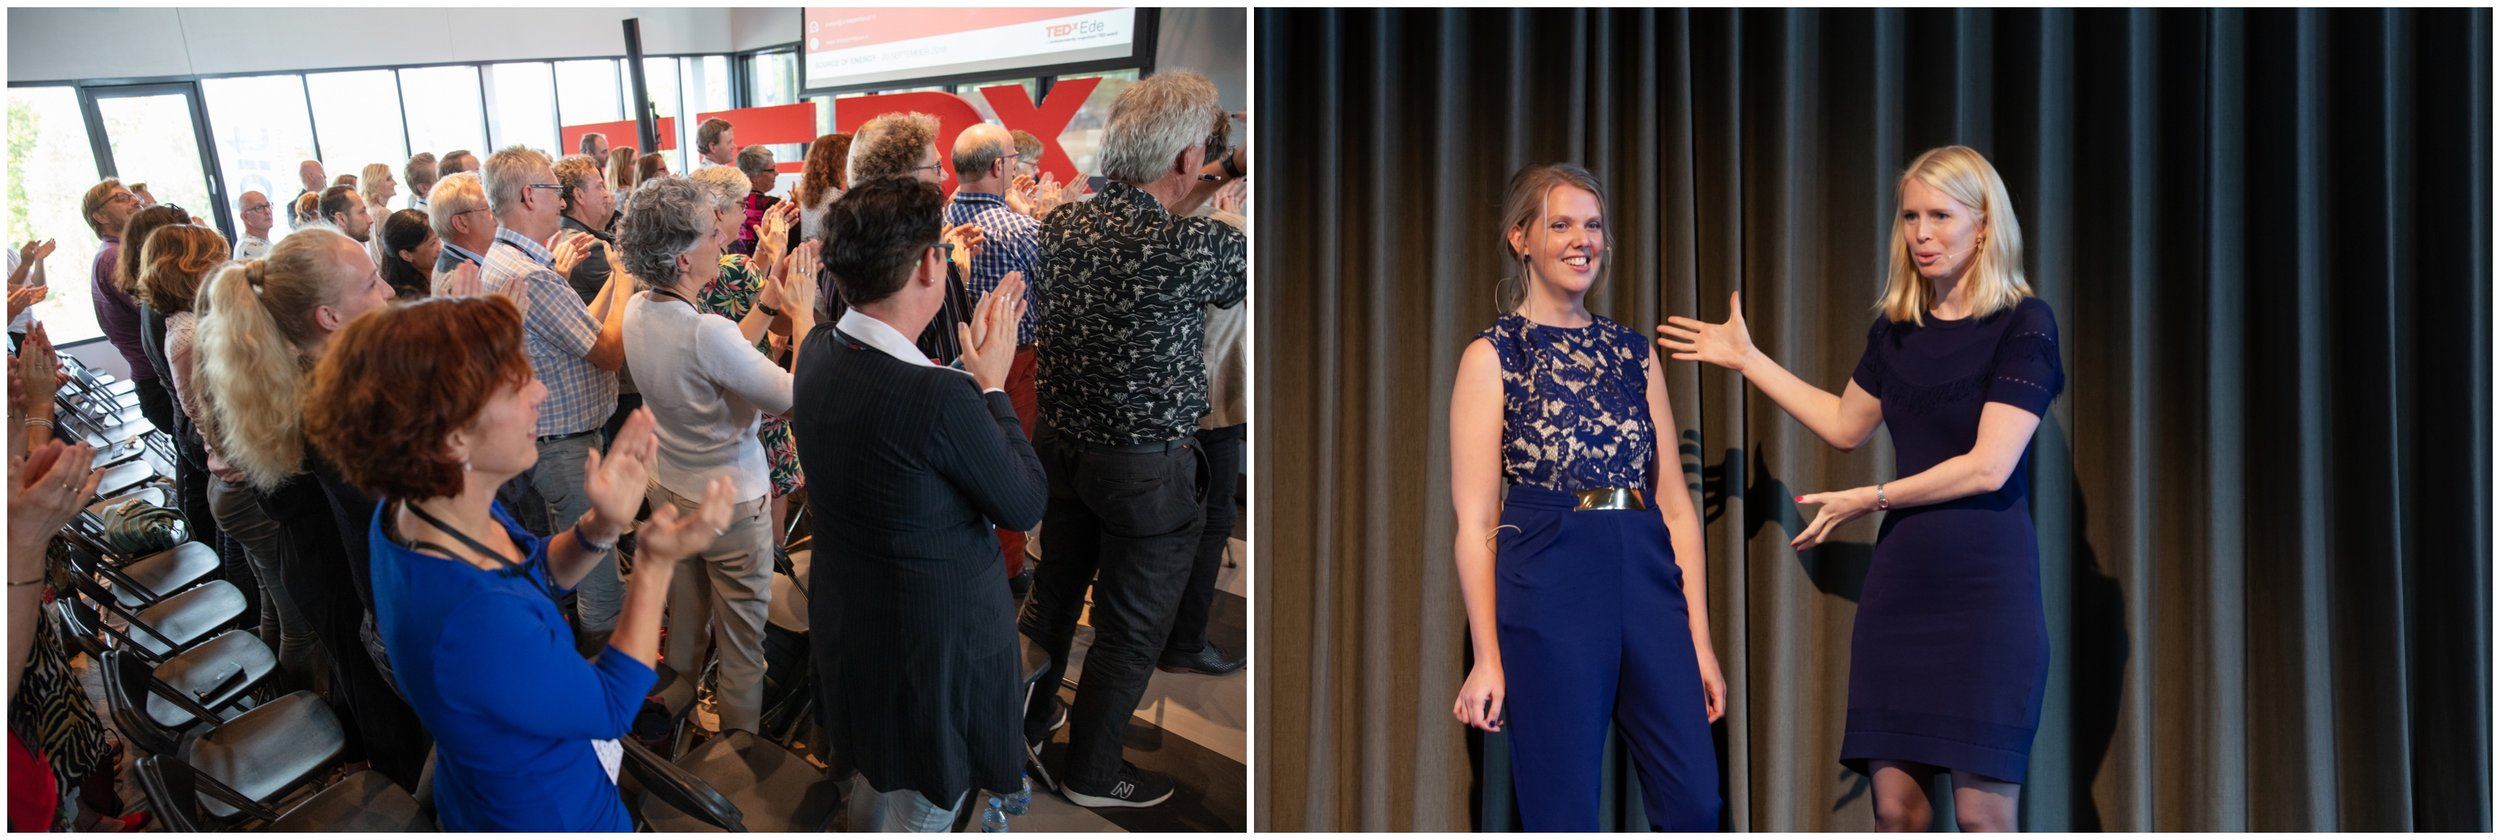 Foto's: TEDxEde